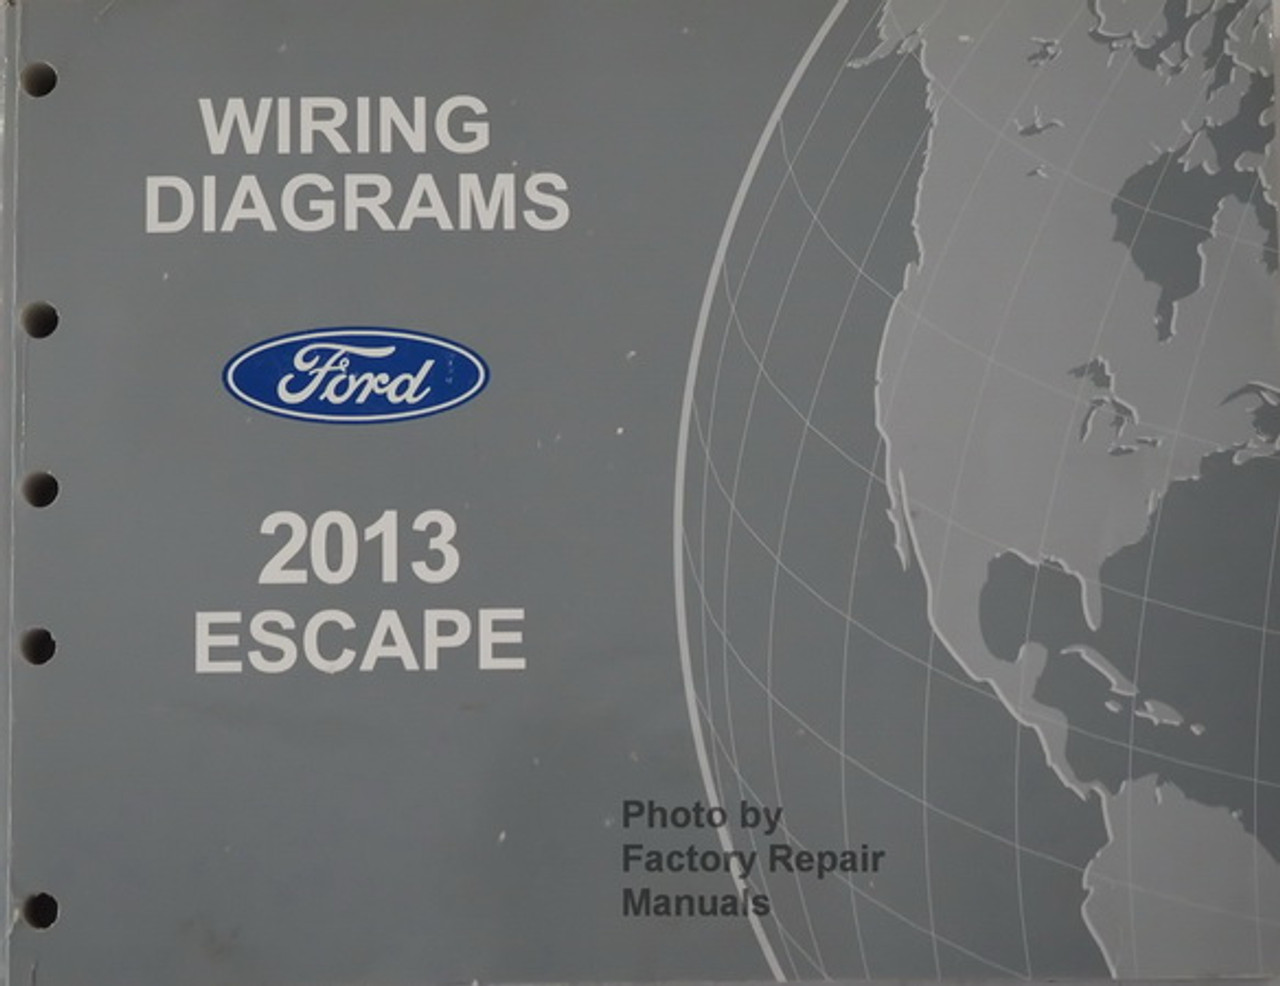 2013 Ford Escape Electrical Wiring Diagrams Original